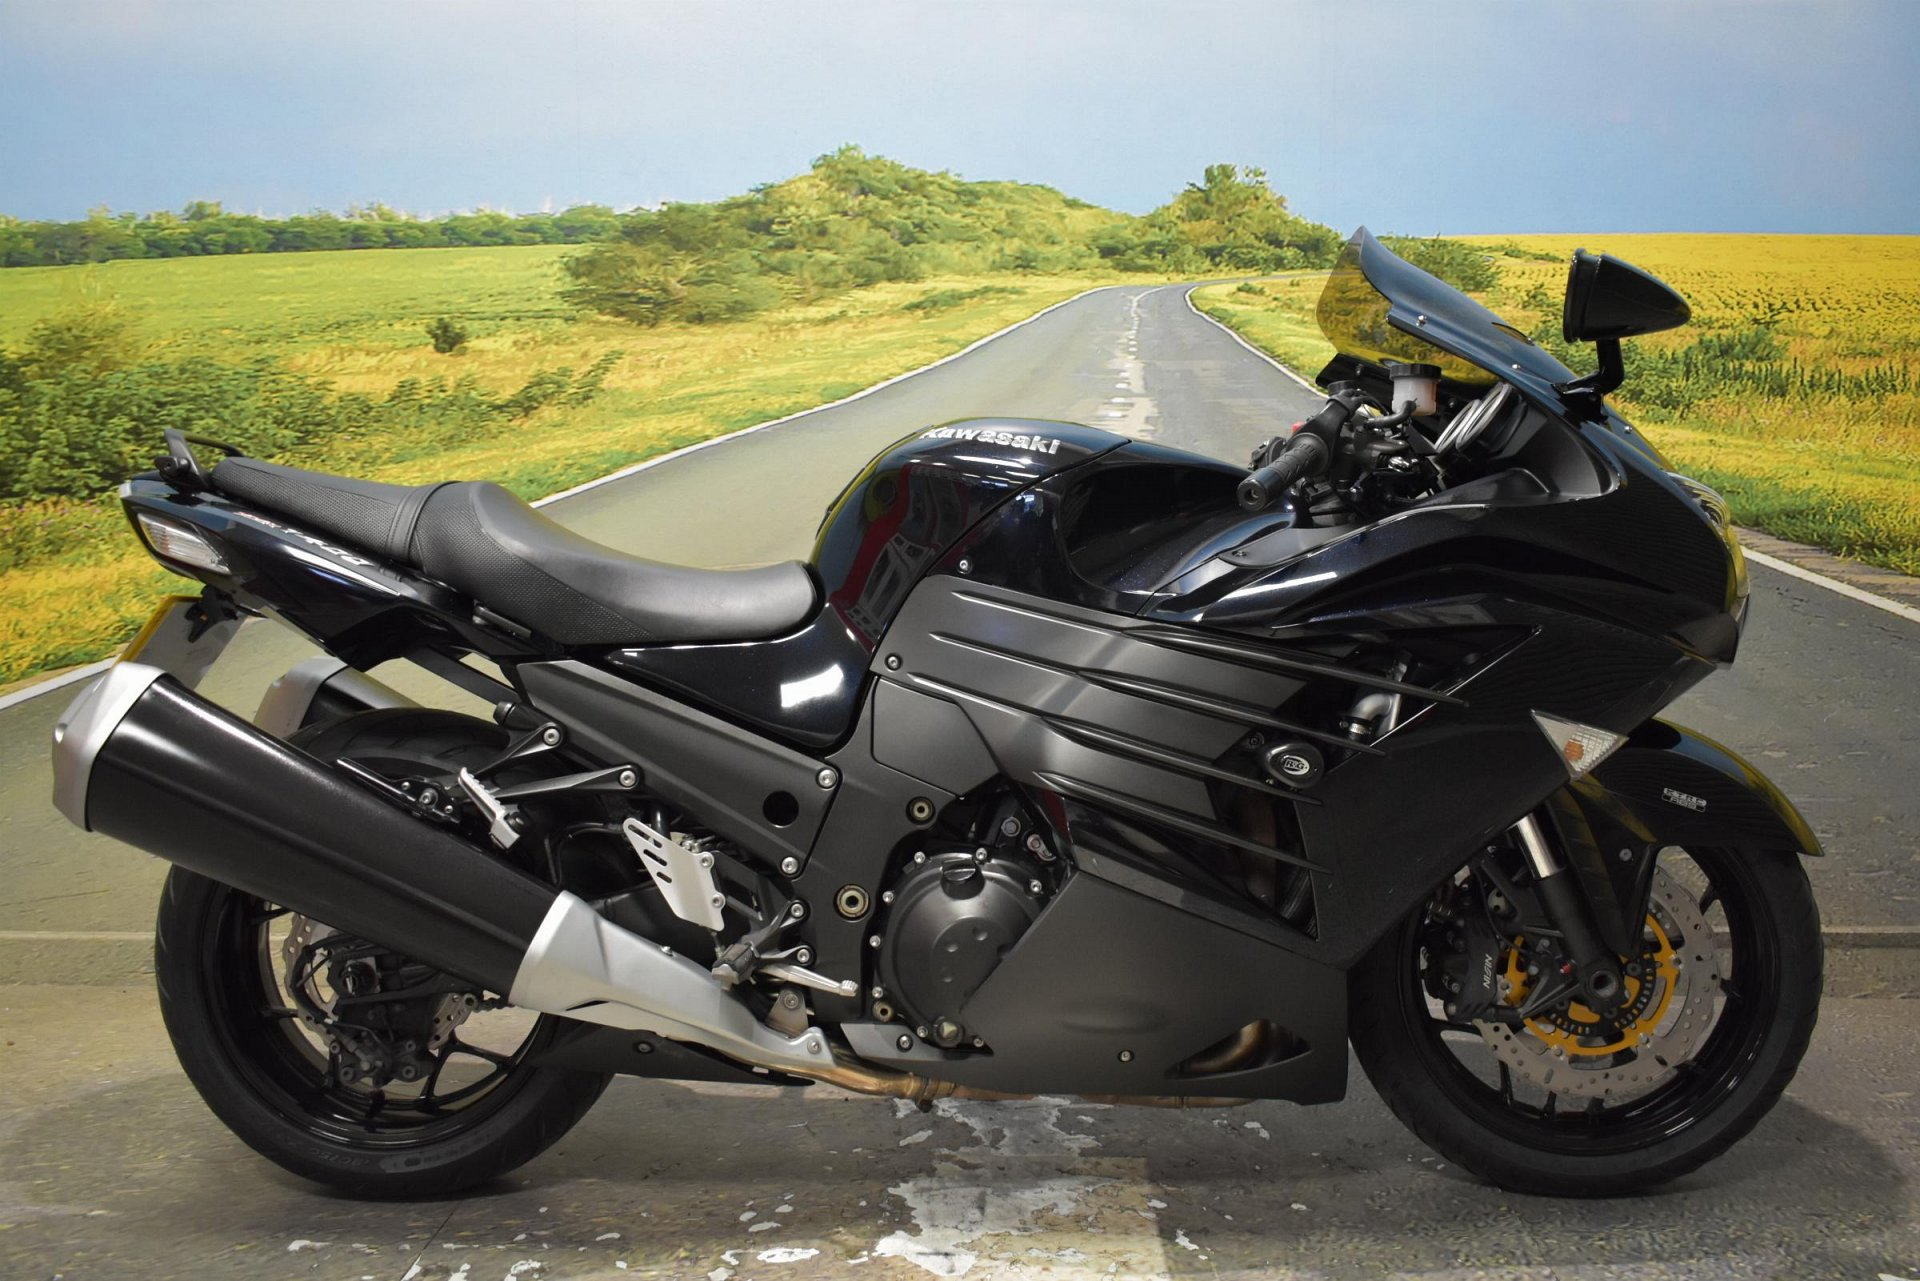 2013 Kawasaki ZZR1400 for sale in Derbyshire